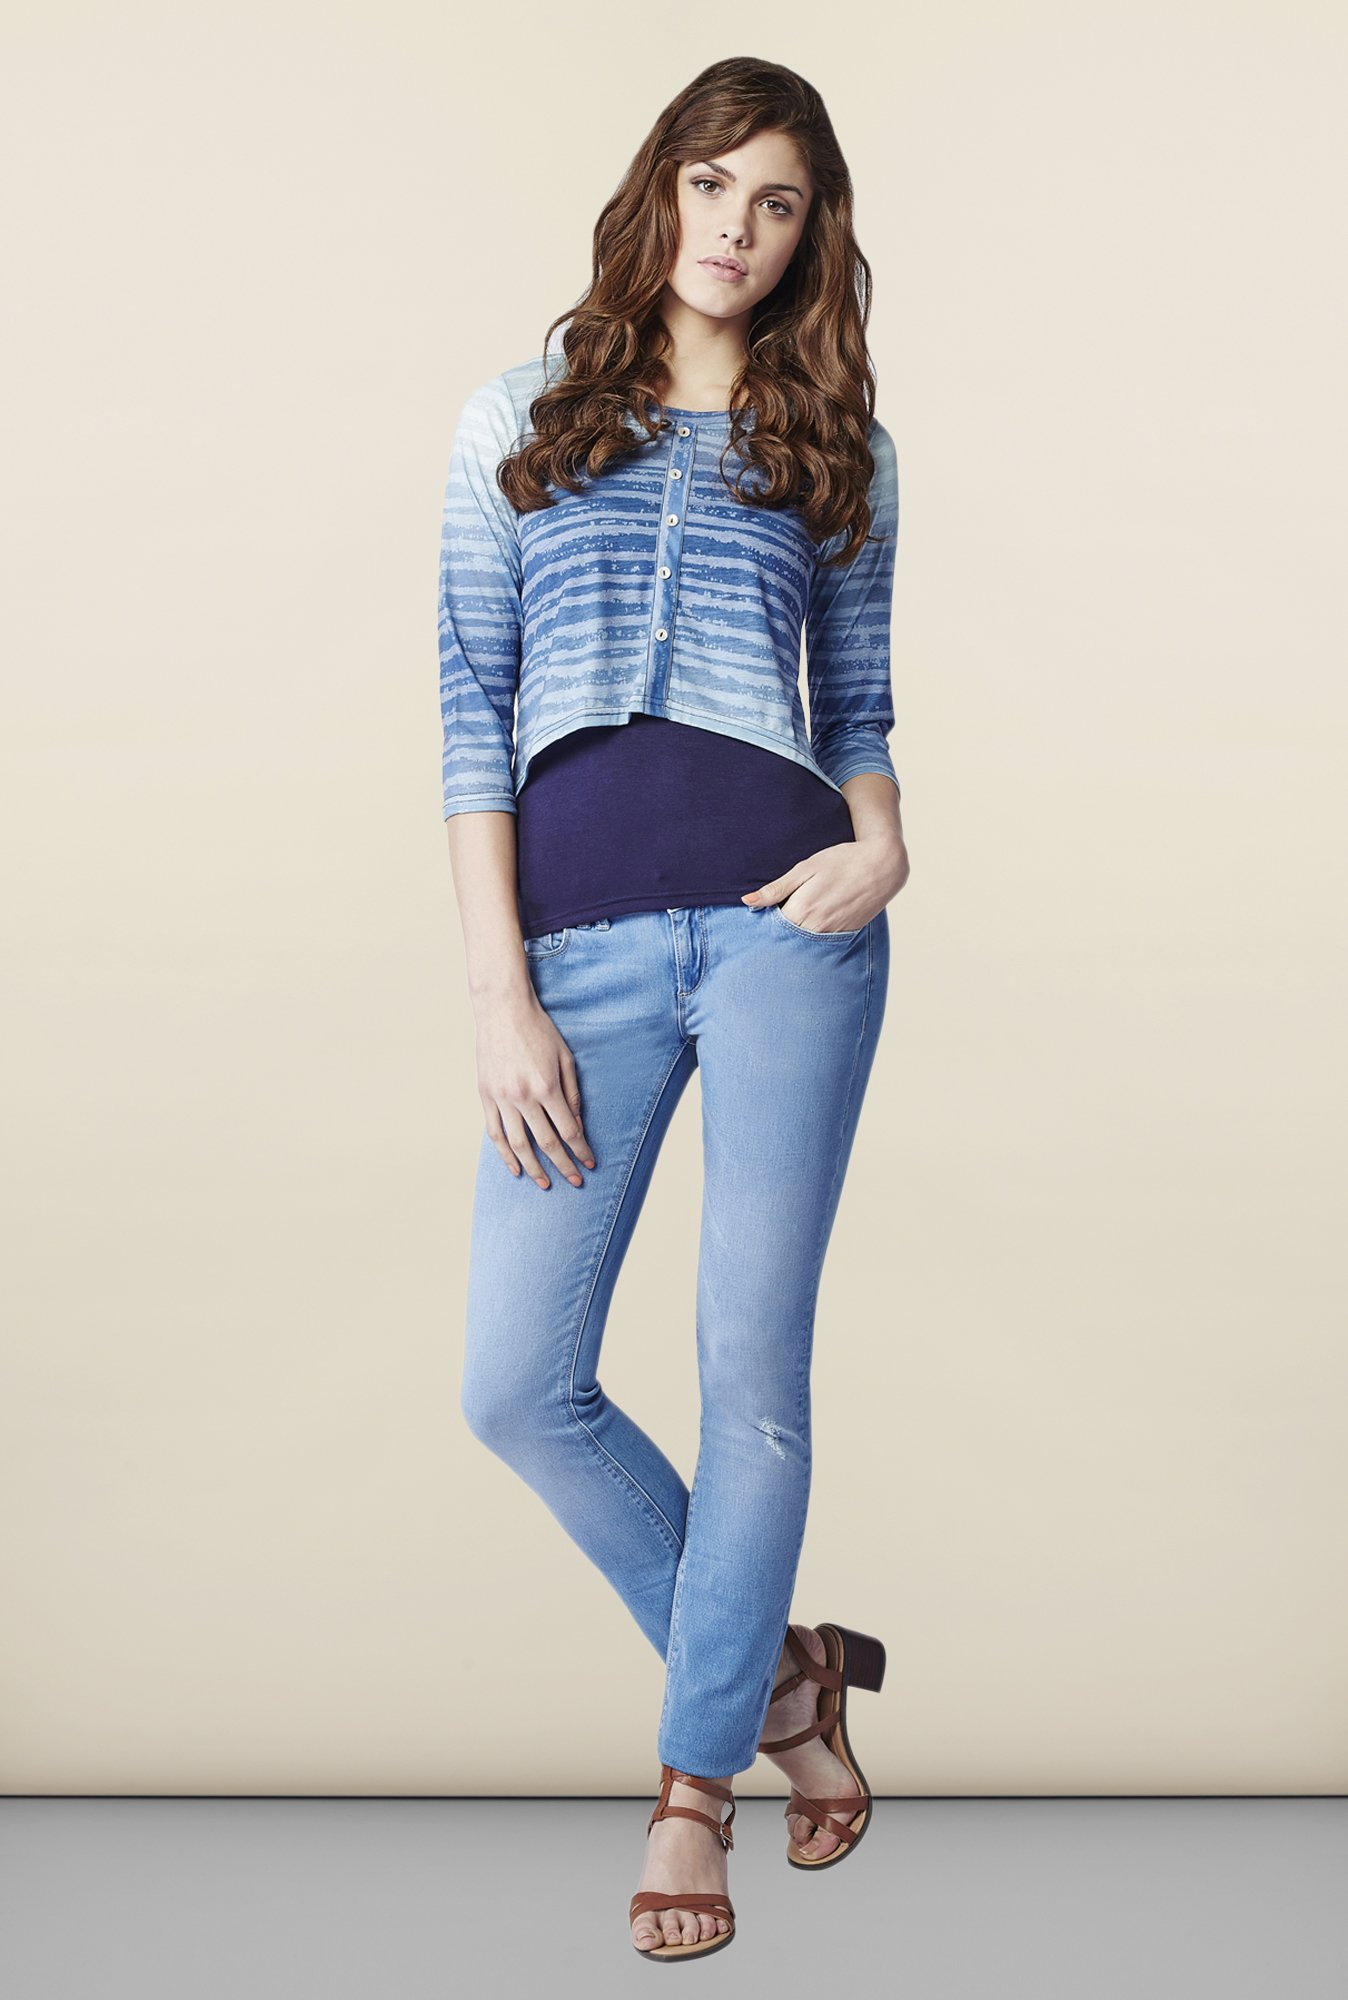 AND Sapphire Striped Top